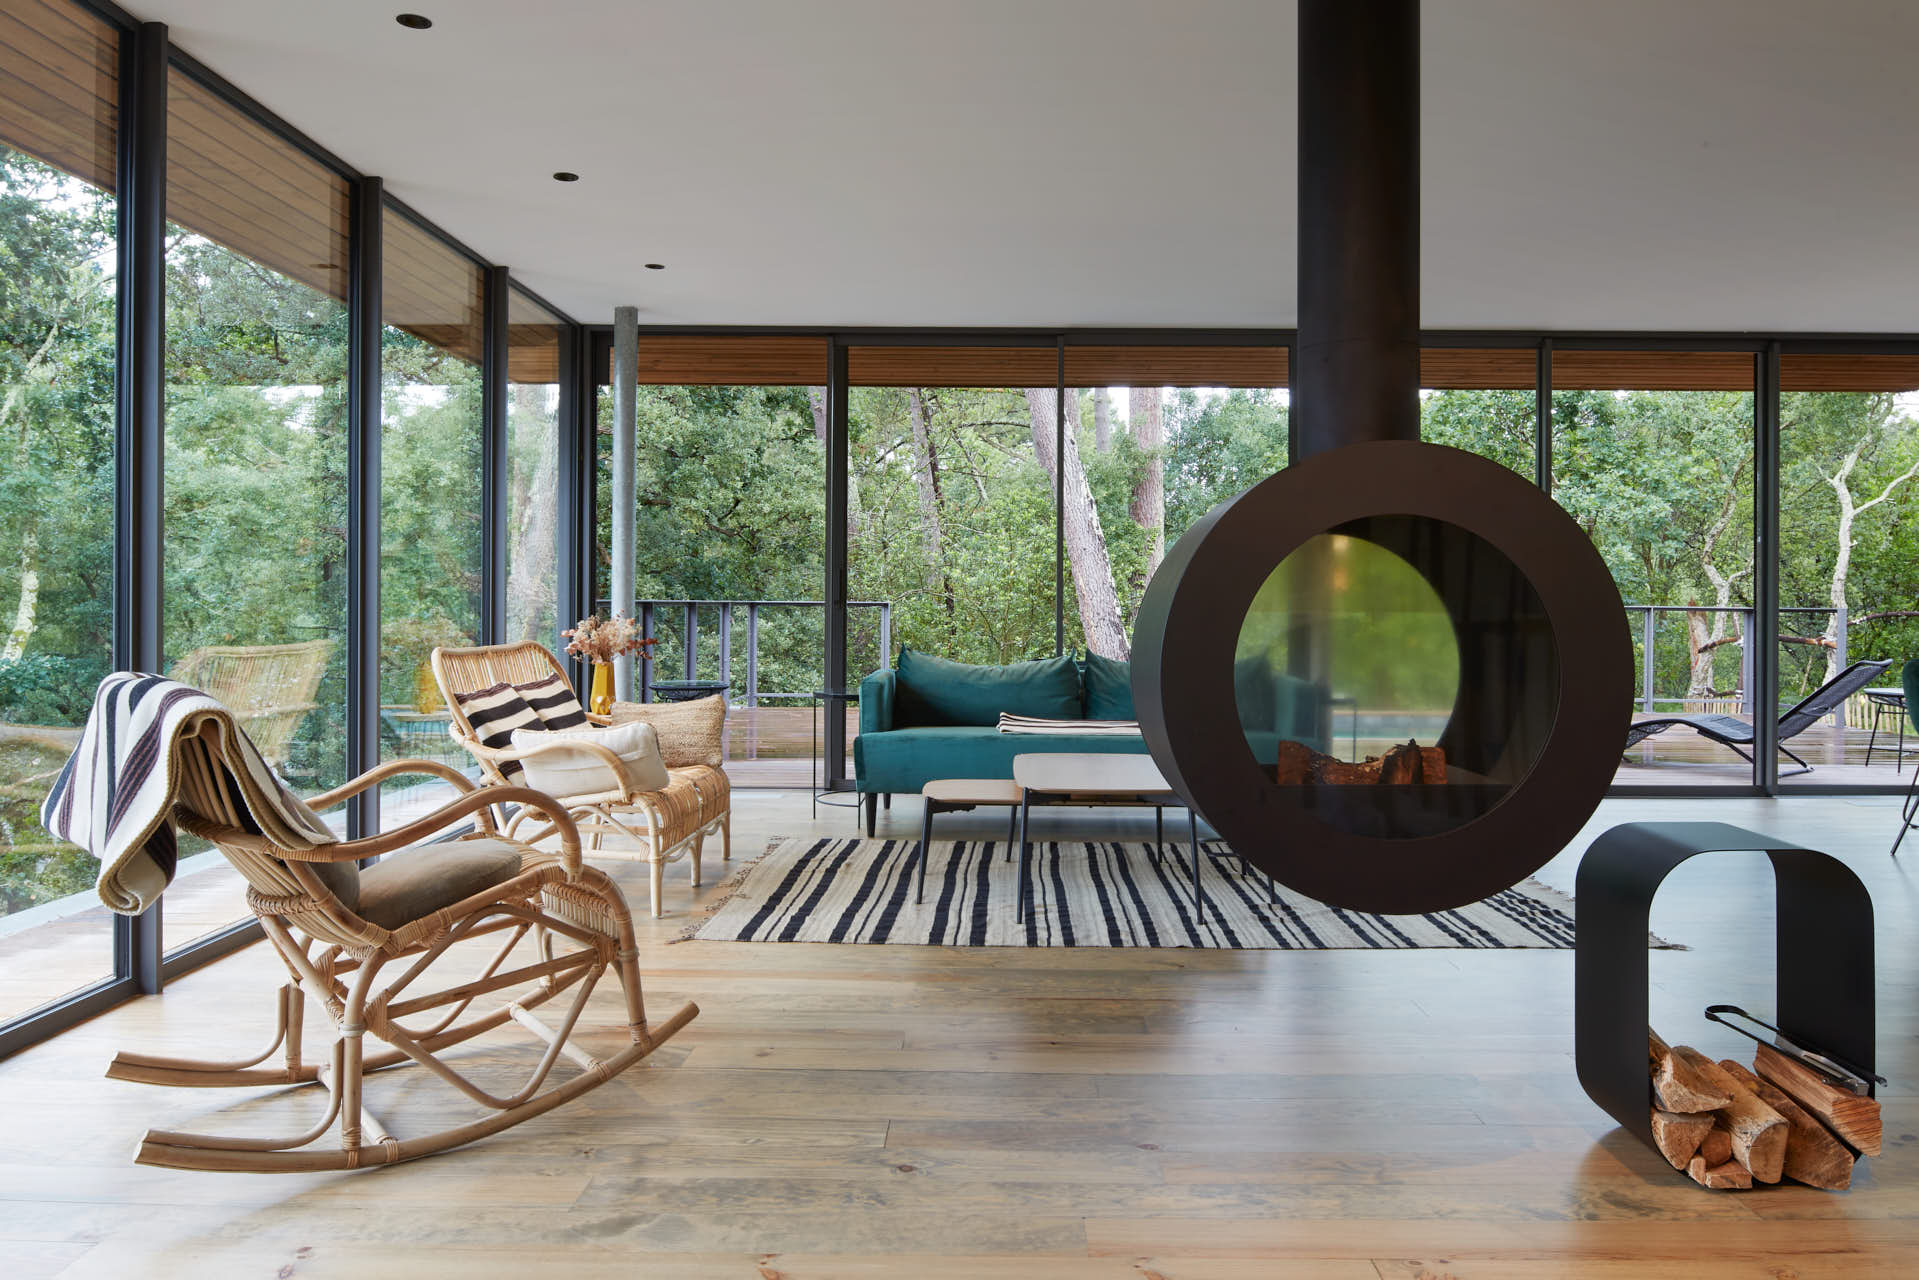 Architectural photography of a living room